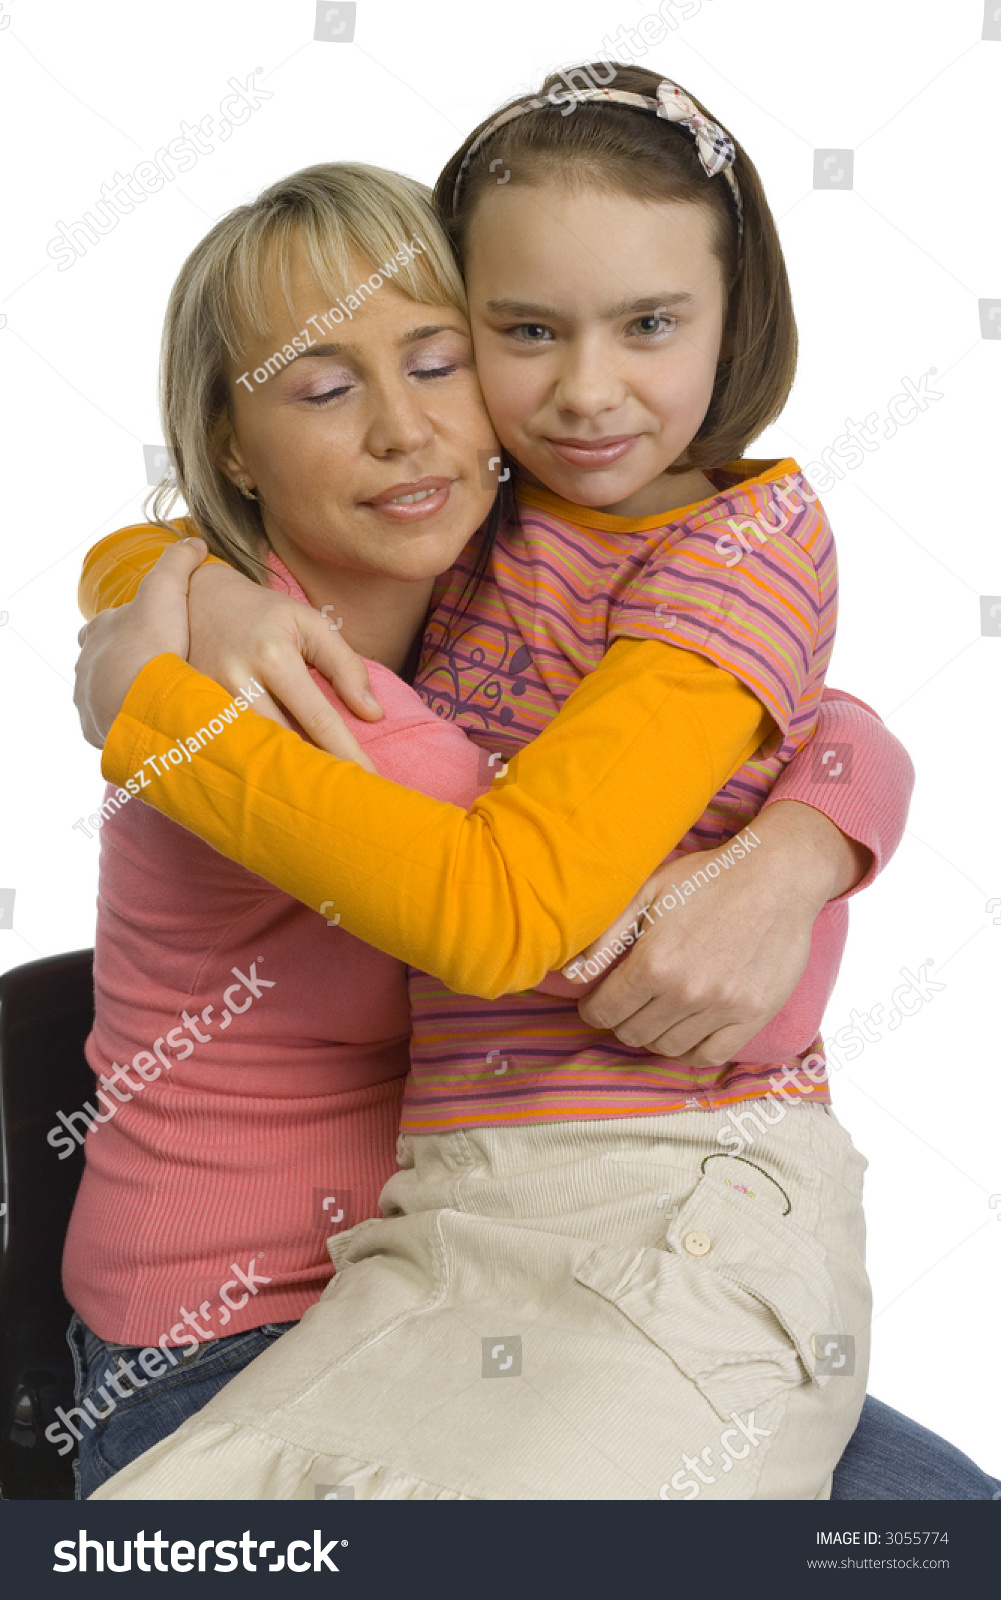 11yo girl naked Hug of woman and her 10-12yo daughter. Daughter is sitting on mother's knees